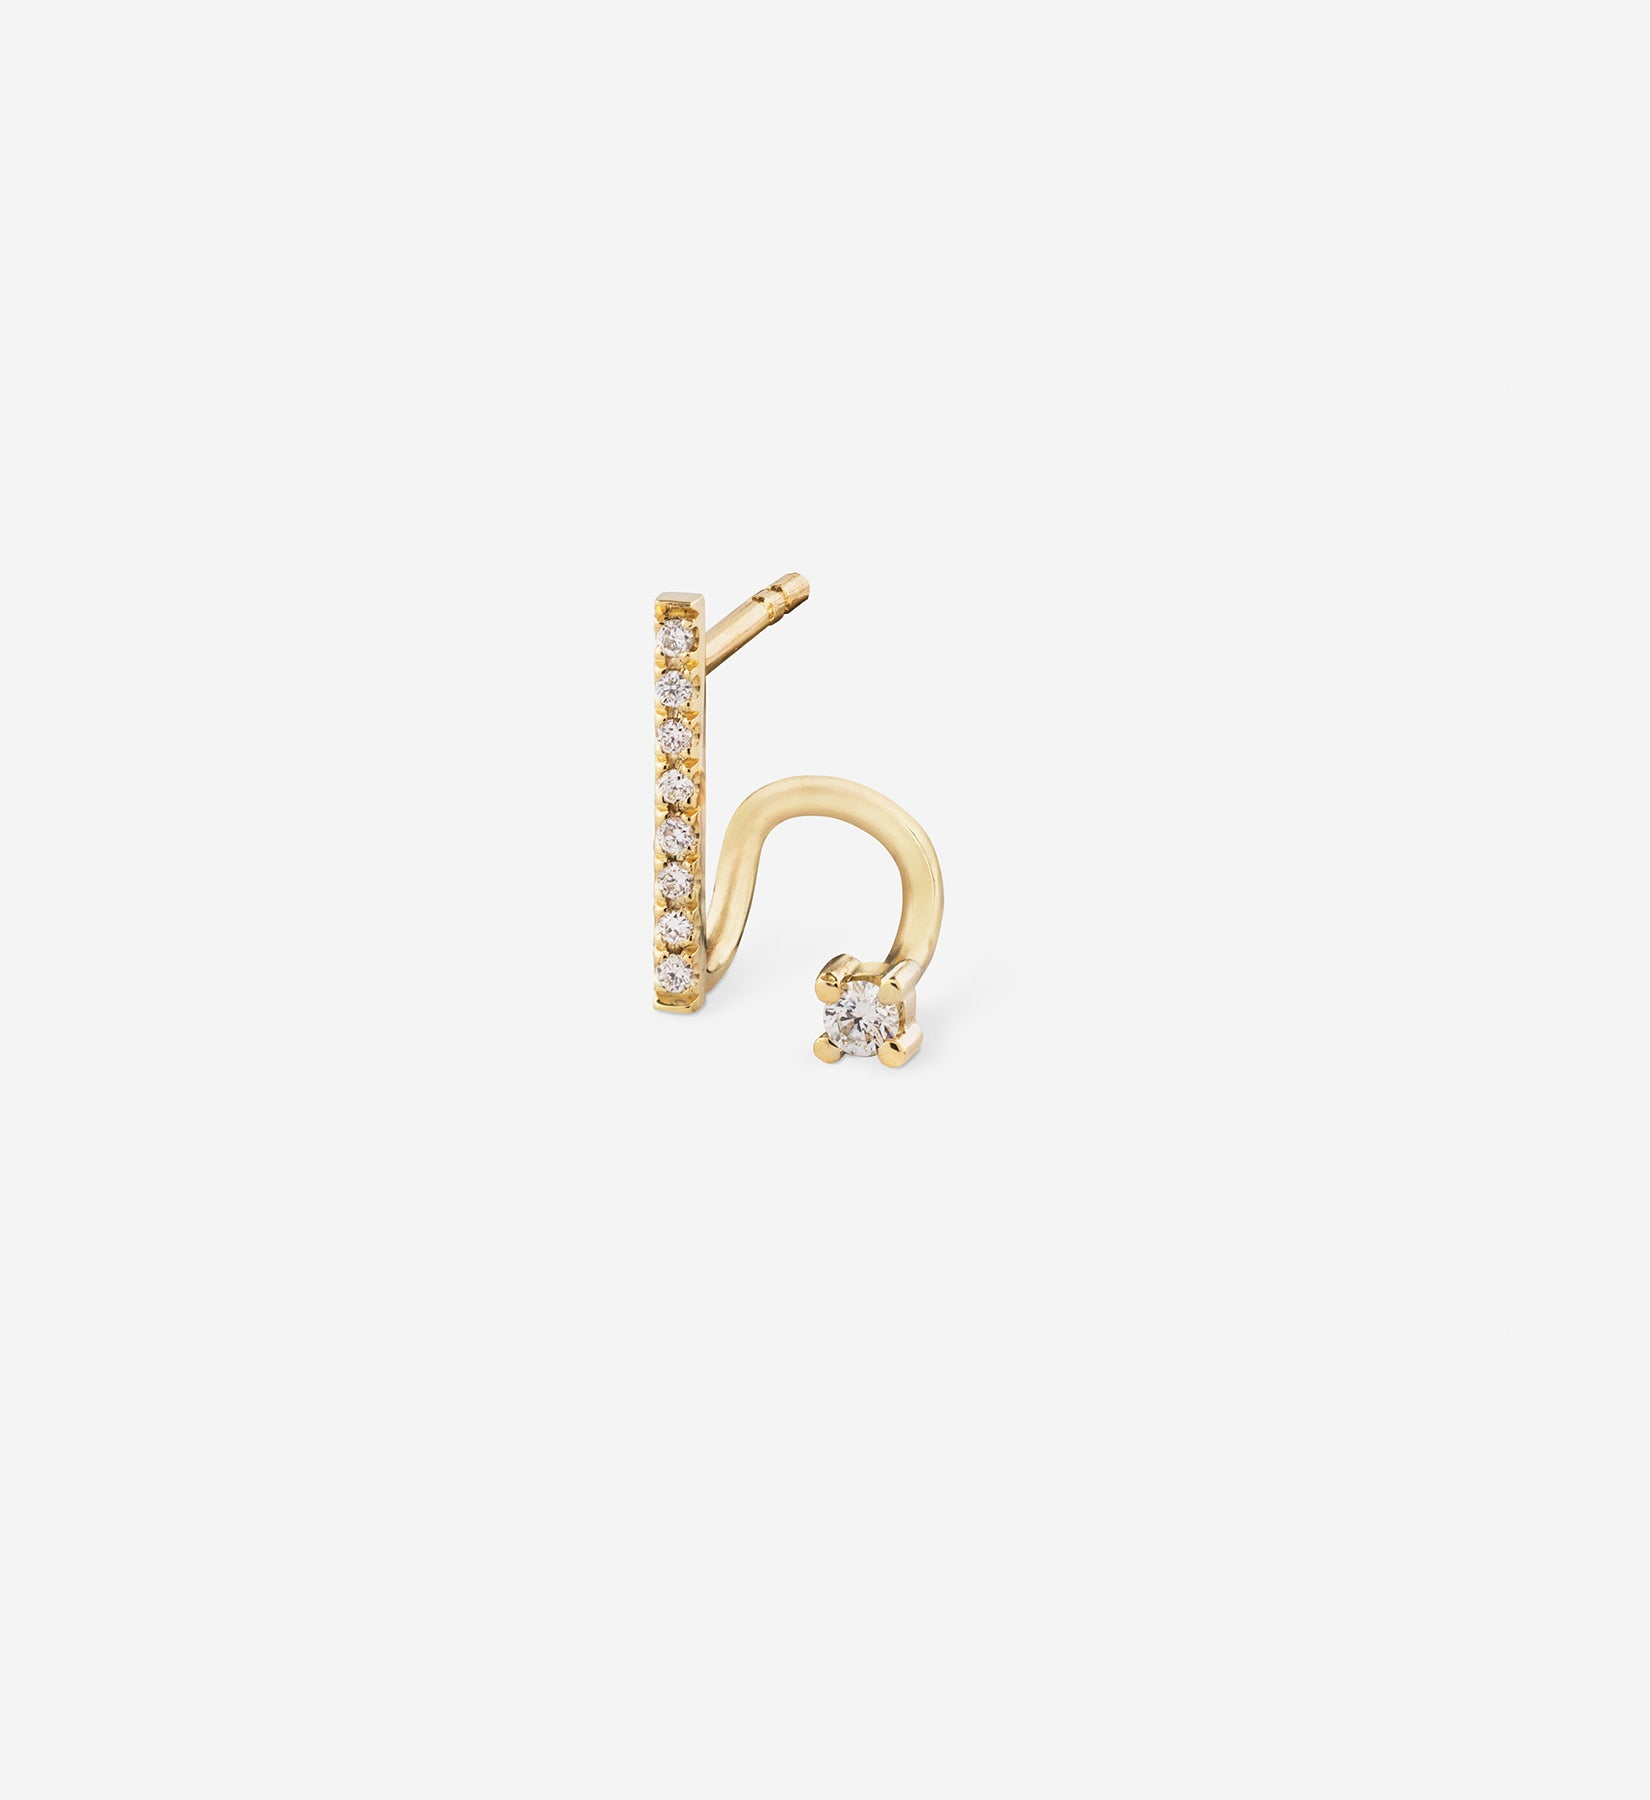 Diamond Line Spiral Earring  0.08 in 14K Gold - Single